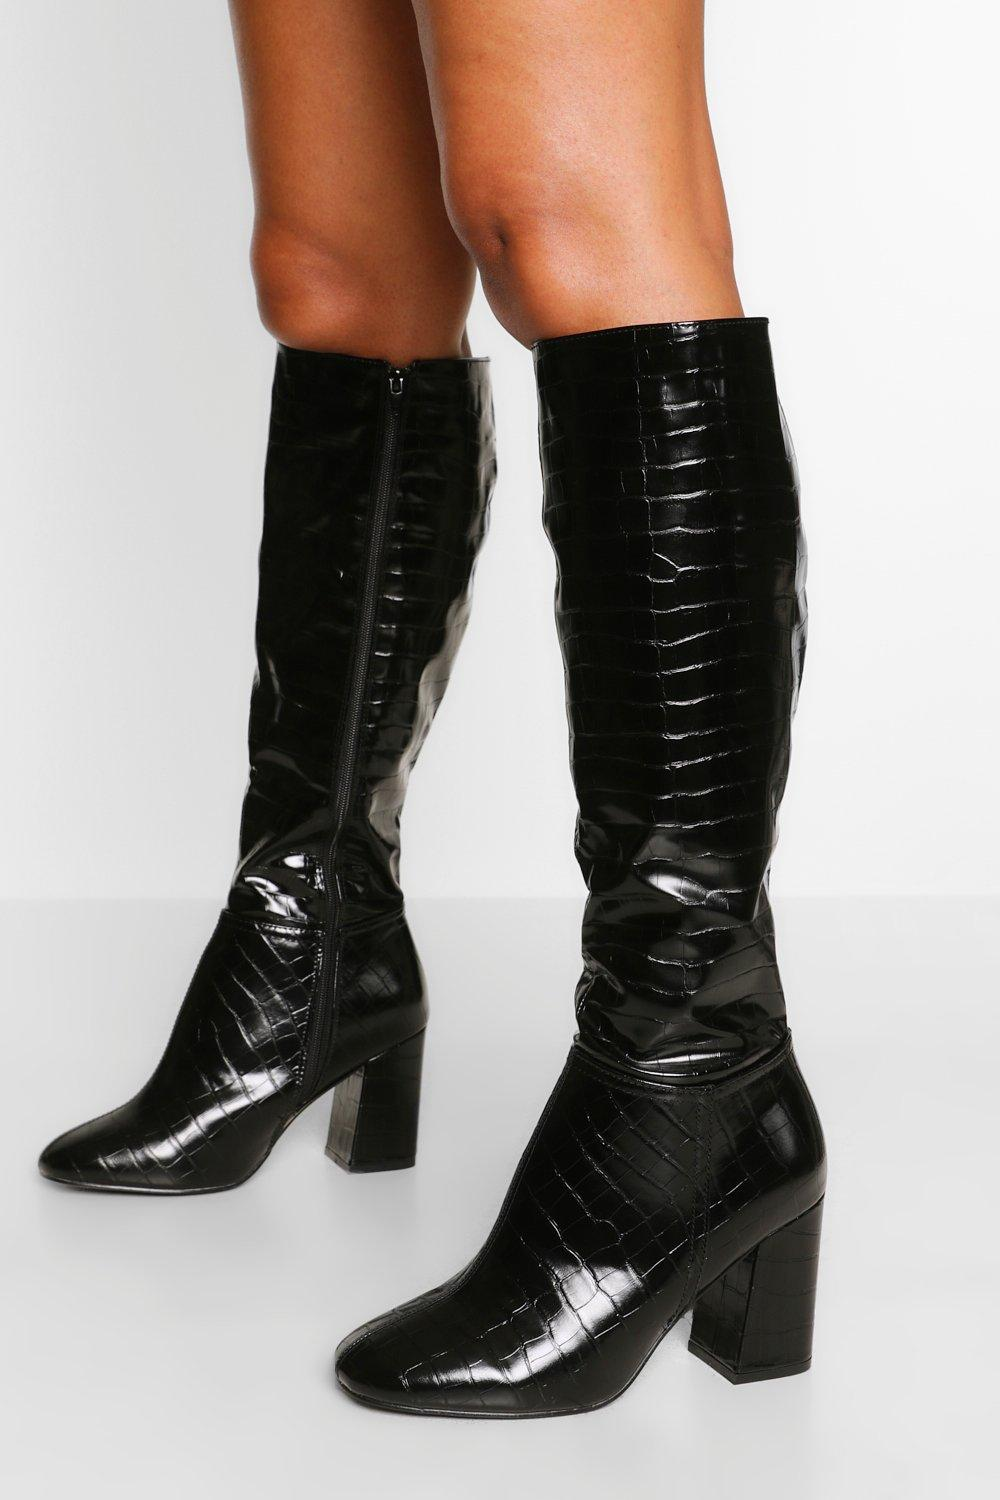 Vintage Boots- Buy Winter Retro Boots Womens Wide Fit Block Heel Knee Boot - Black - 10 $42.00 AT vintagedancer.com